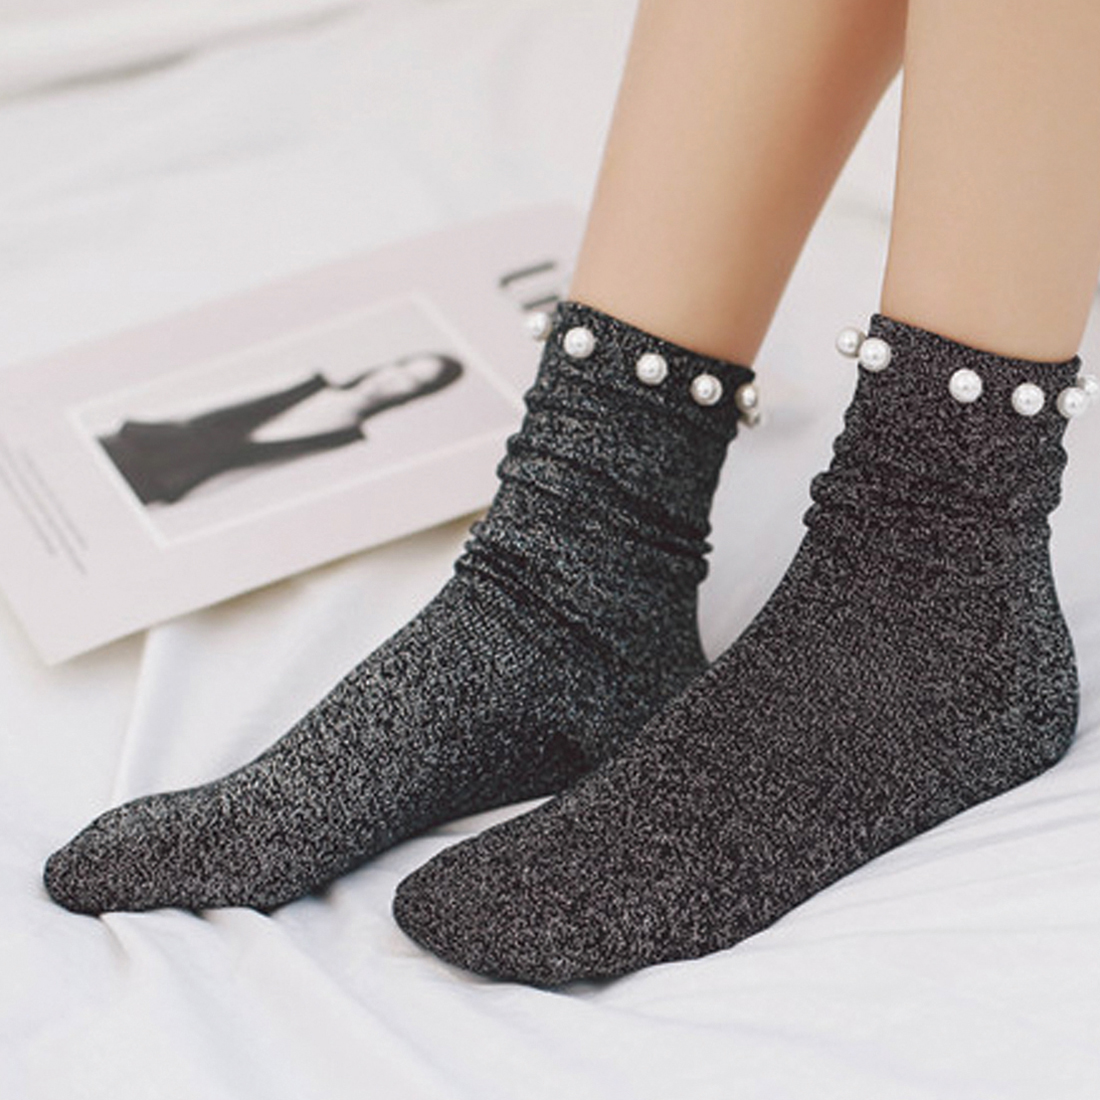 2019  Women socks Cotton Lovely Candy Color Imitation Pearl Women's Socks.Casual Ladies Girl's Short female Socks Sox Hosiery